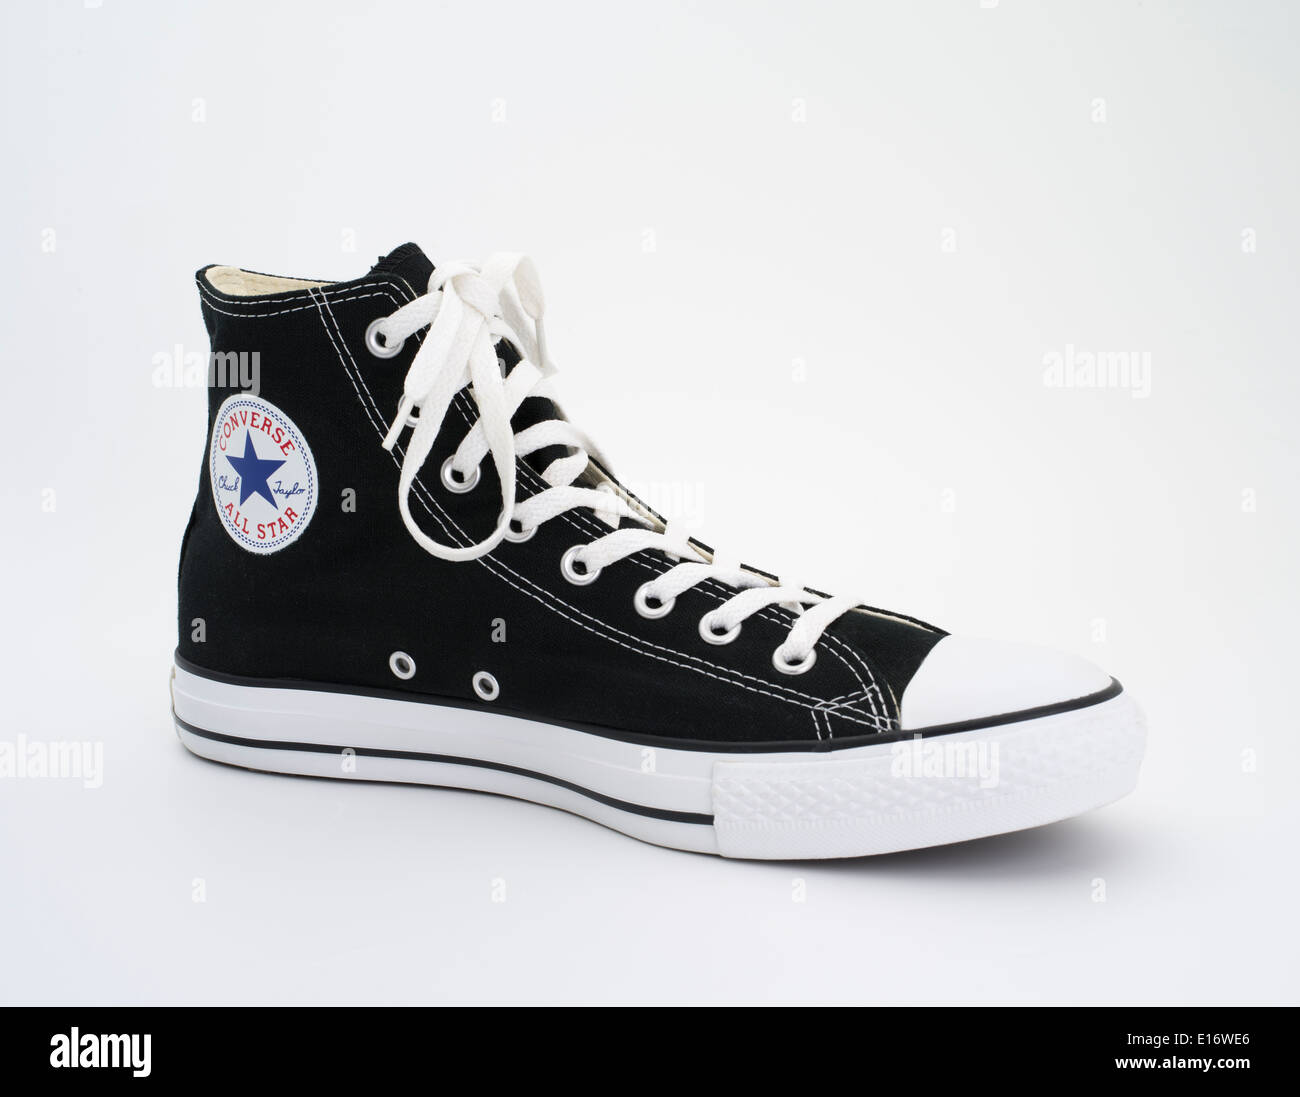 c3d45c16945d Converse All Star Black and White Chuck Taylor - Chuck Taylor All-Stars  canvas and rubber shoes - basketball sneakers